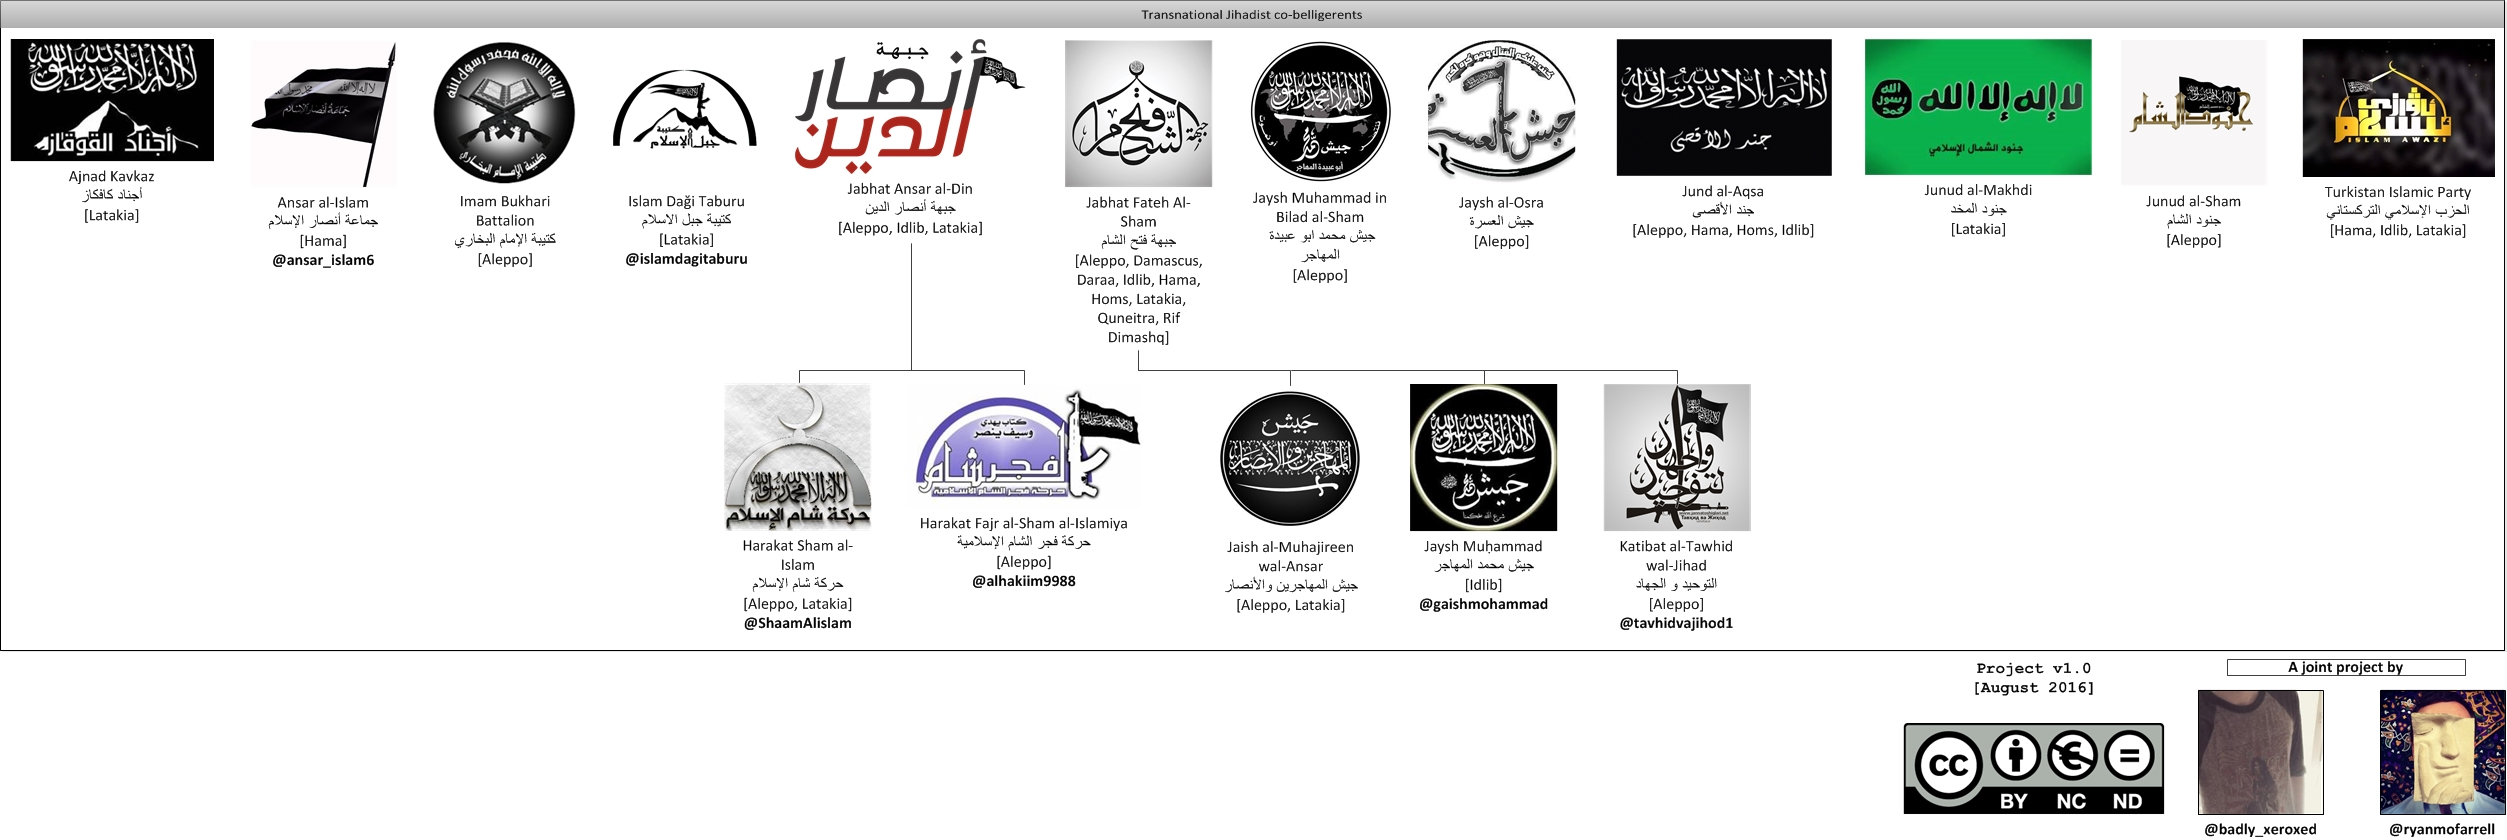 All transnational Jihadi co-belligerents in the Syrian Civil War